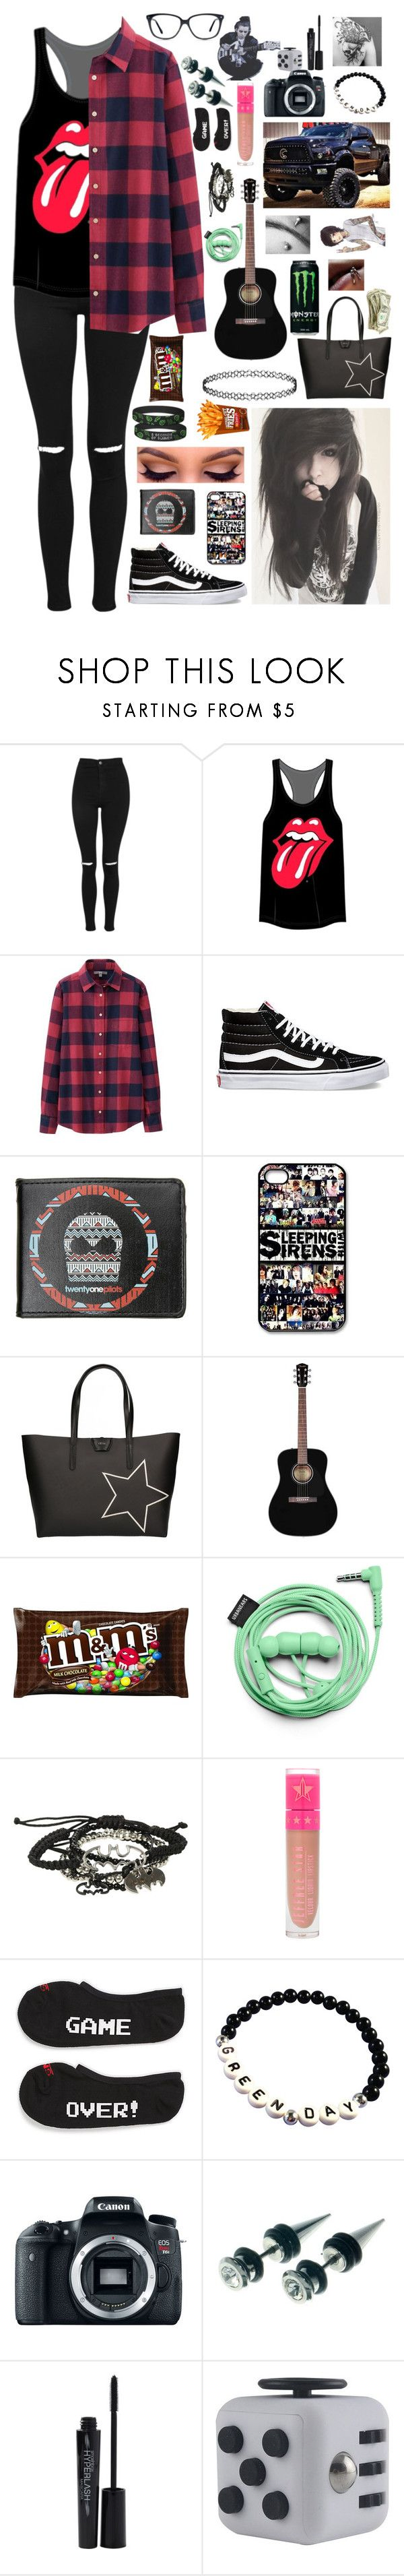 """""""I'm watching kids do a shrek play at my grandma's school..... fun"""" by xxghostlygracexx ❤ liked on Polyvore featuring Topshop, Uniqlo, Vans, Gum by Gianni Chiarini, Sykes, Urbanears, Eos, Disney, Smashbox and Ace"""